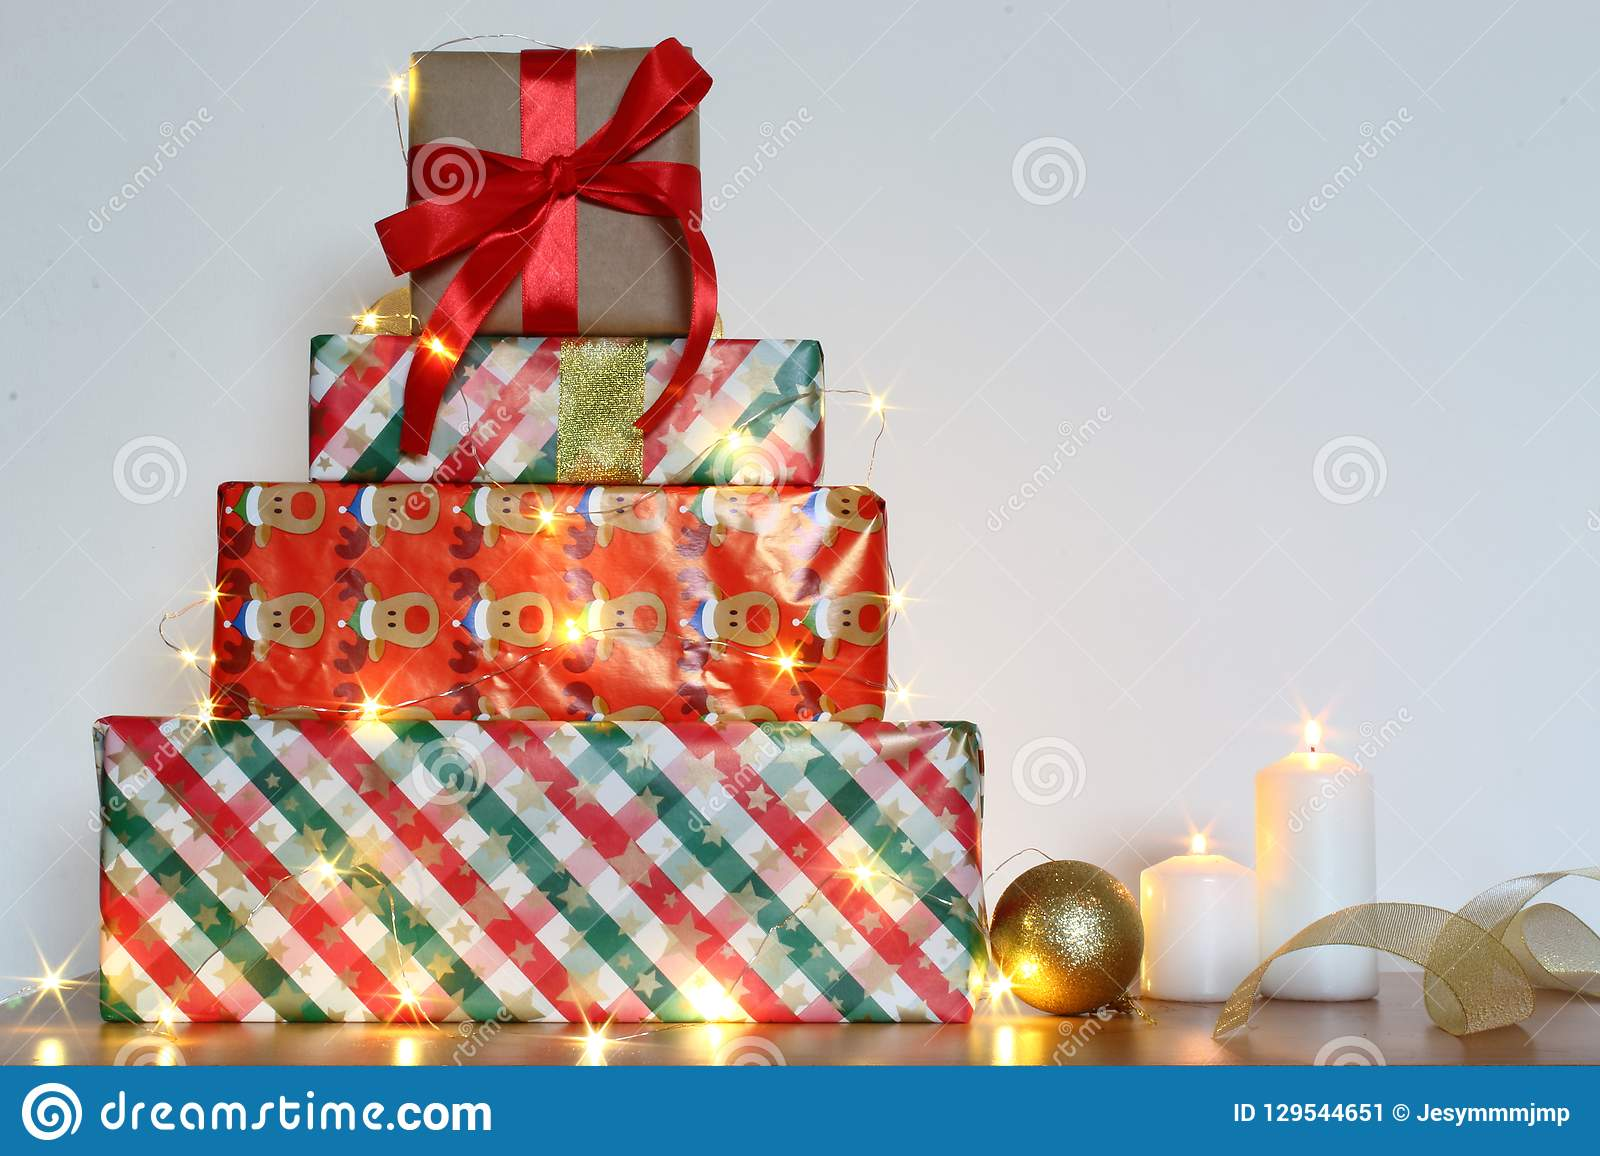 Christmas Gifts Handmade.Holiday Christmas Gifts With Handmade Decoration Boxes And